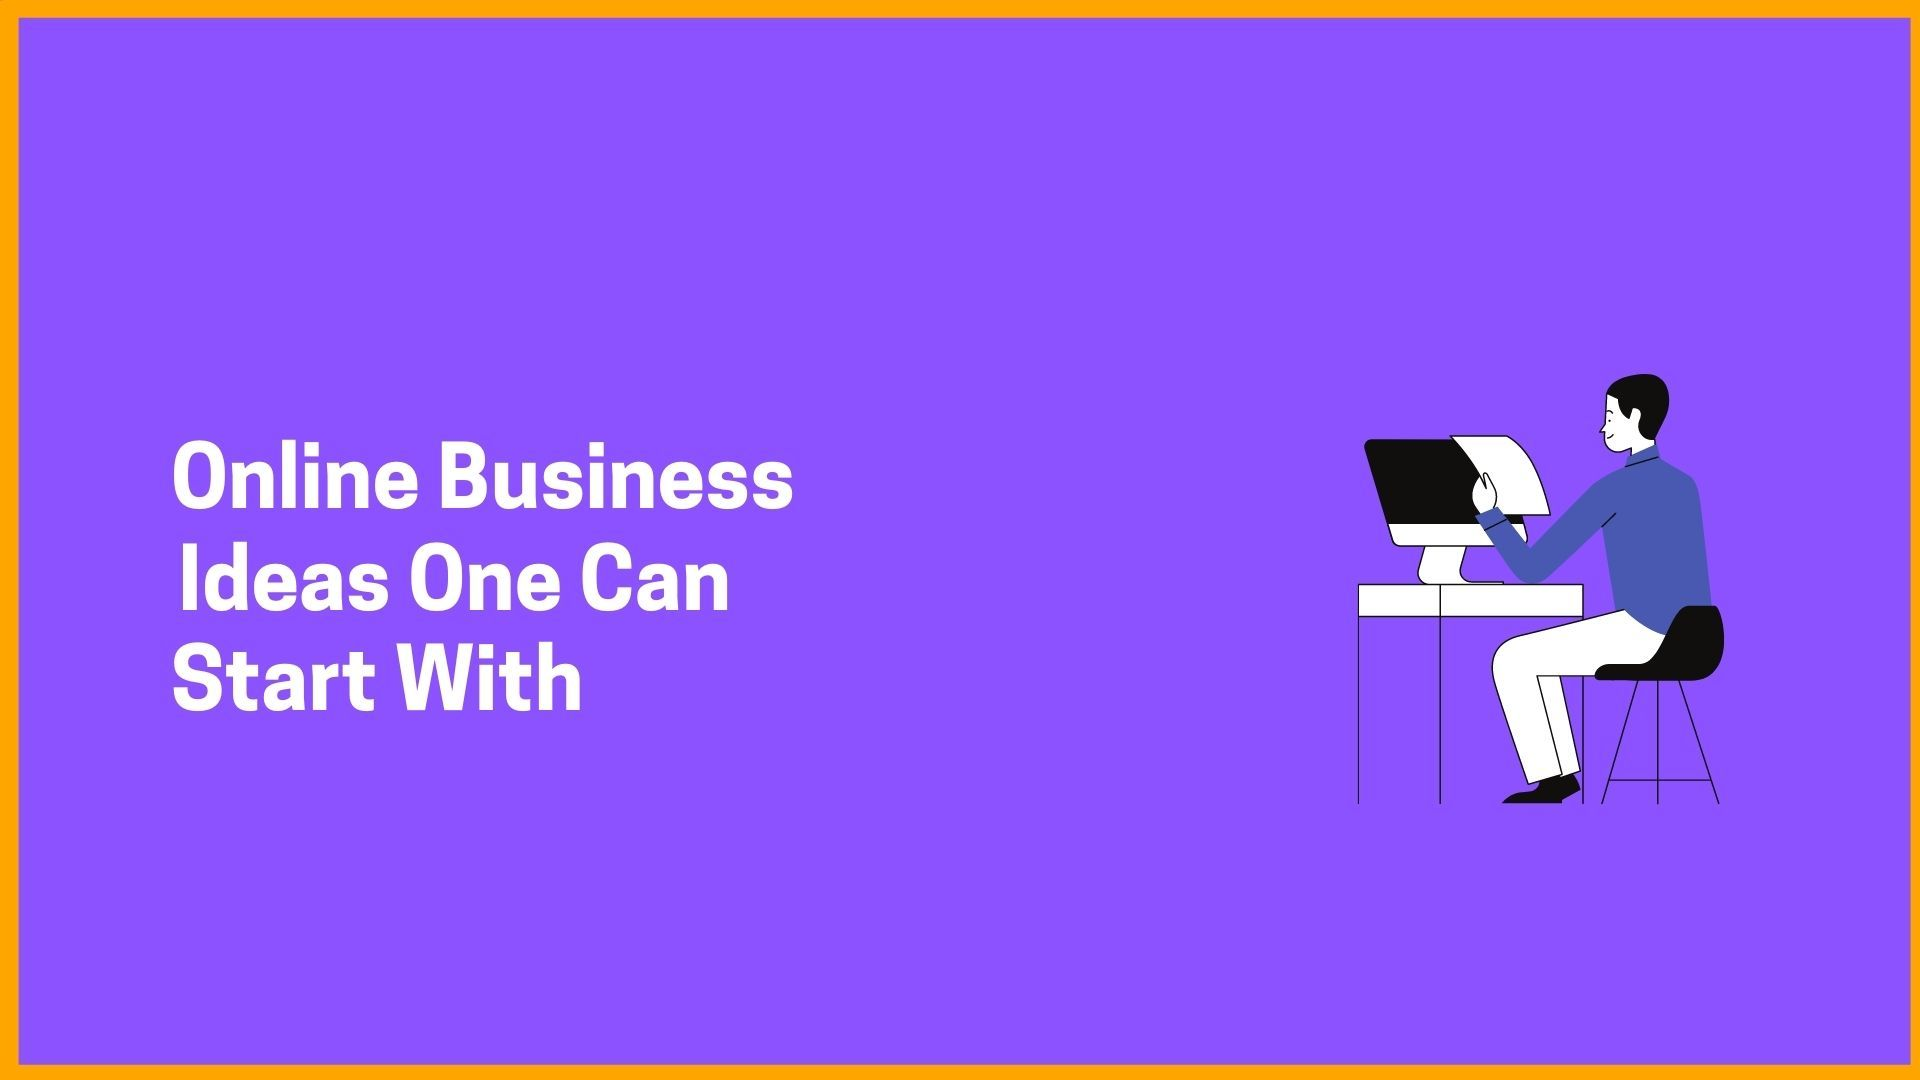 Online Business Ideas One Can Start With